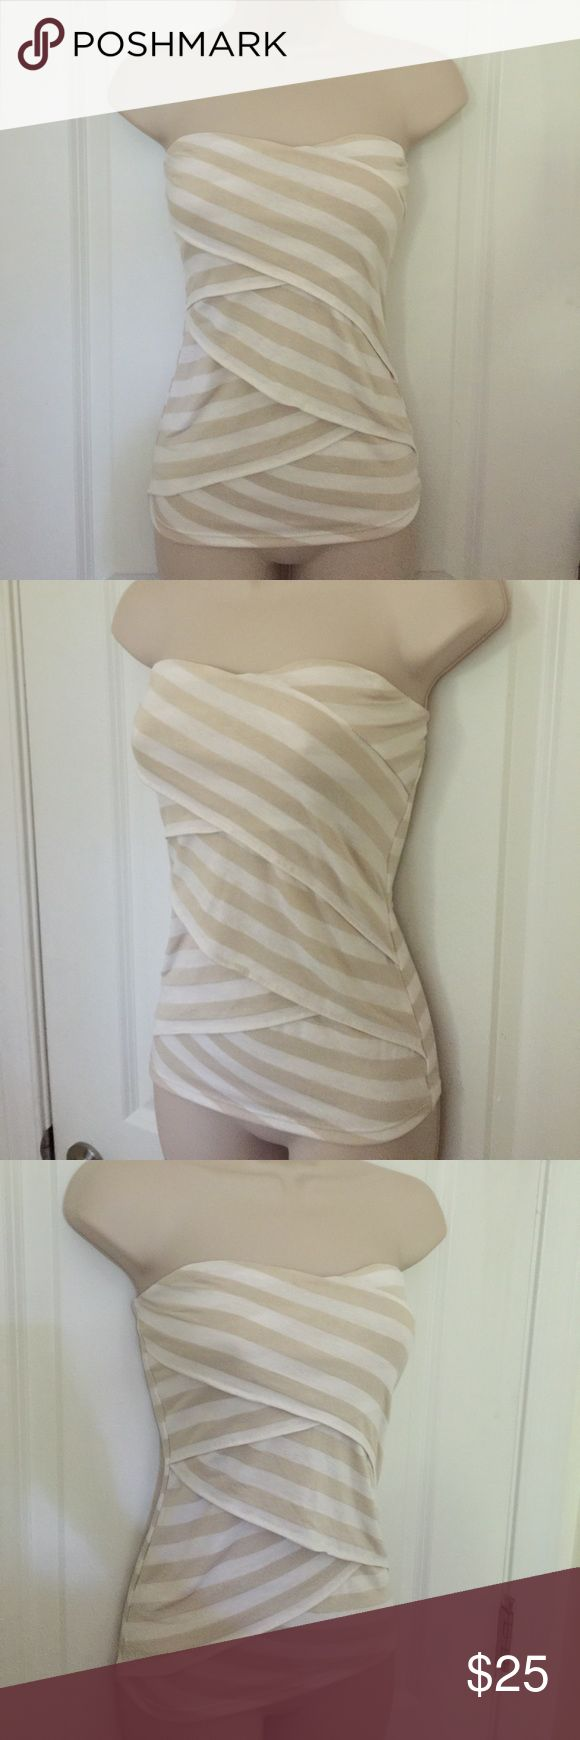 """WHBM Beige/white striped knit bandeau top sz XS Beige & white striped tiered bandeau top from WHITE HOUSE BLACK MARKET  Size EXTRA SMALL Bust (underarm to underarm) - UNSTRETCHED: 30""""  Bust (underarm to underarm) - STRETCHED: up to 36""""  Length (underarm to hem): 16""""  Stretch bandeau top with striped pattern. Tiered at front.  Shell: 48% polyester, 47% rayon, 5% spandex. Lining: 94% polyester, 6% spandex.  In excellent gently used condition. No stains, tears or holes. From a smoke free home…"""